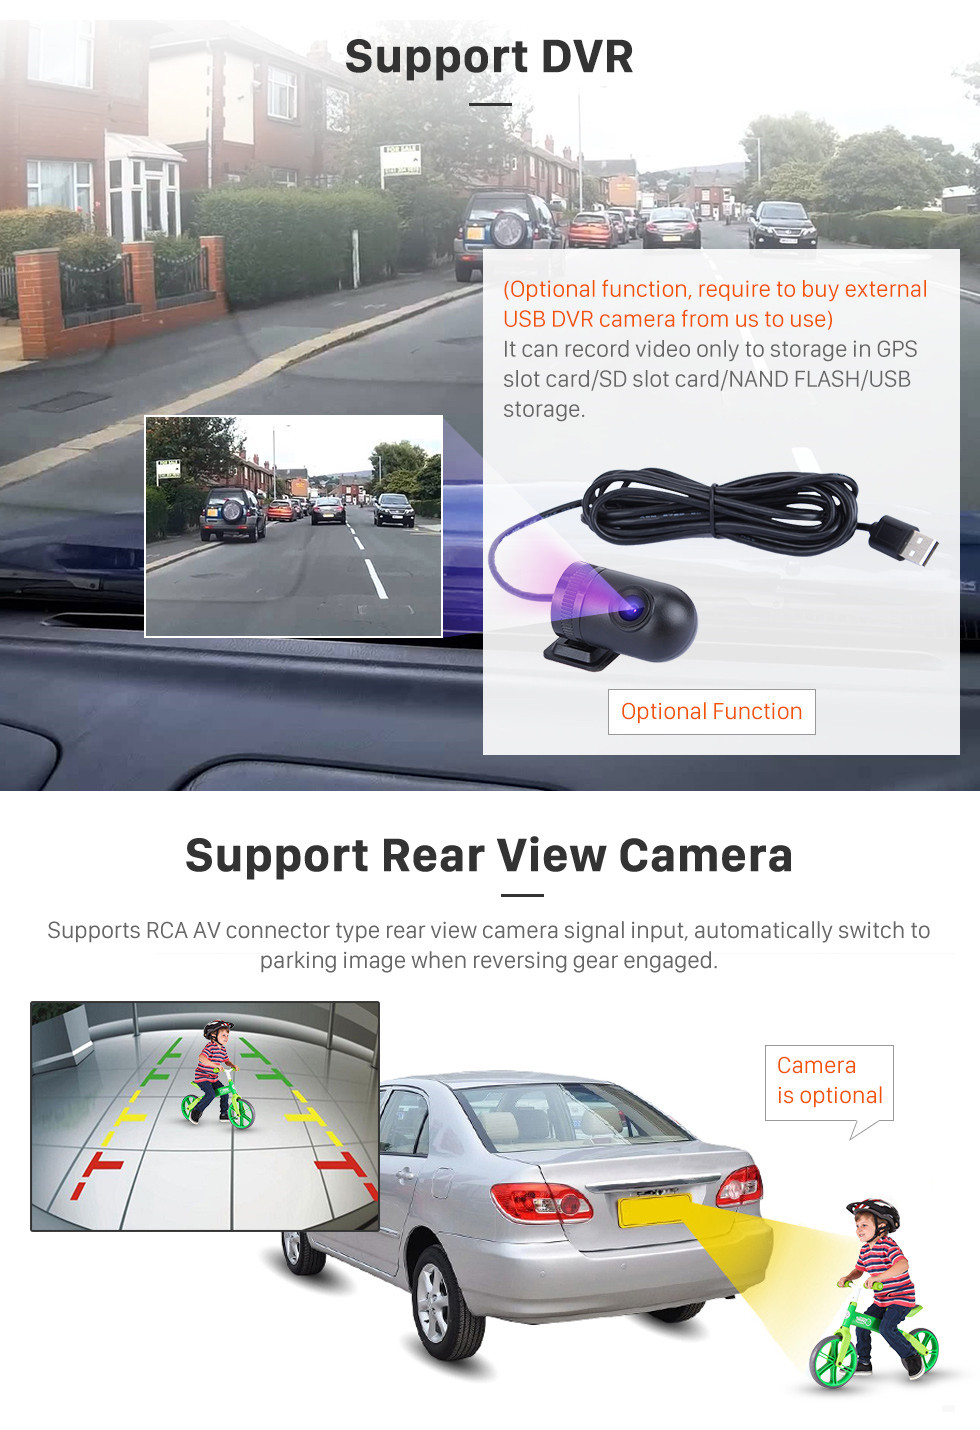 Seicane All-in-one 10.1 inch Android 9.0 Radio Removal for 2006-2011 Honda Civic RHD GPS Head Unit 1024*600 Multi-touch Capacitive Screen Bluetooth Music MP3 Mirror Link OBD2 AUX 3G WiFi HD 1080P